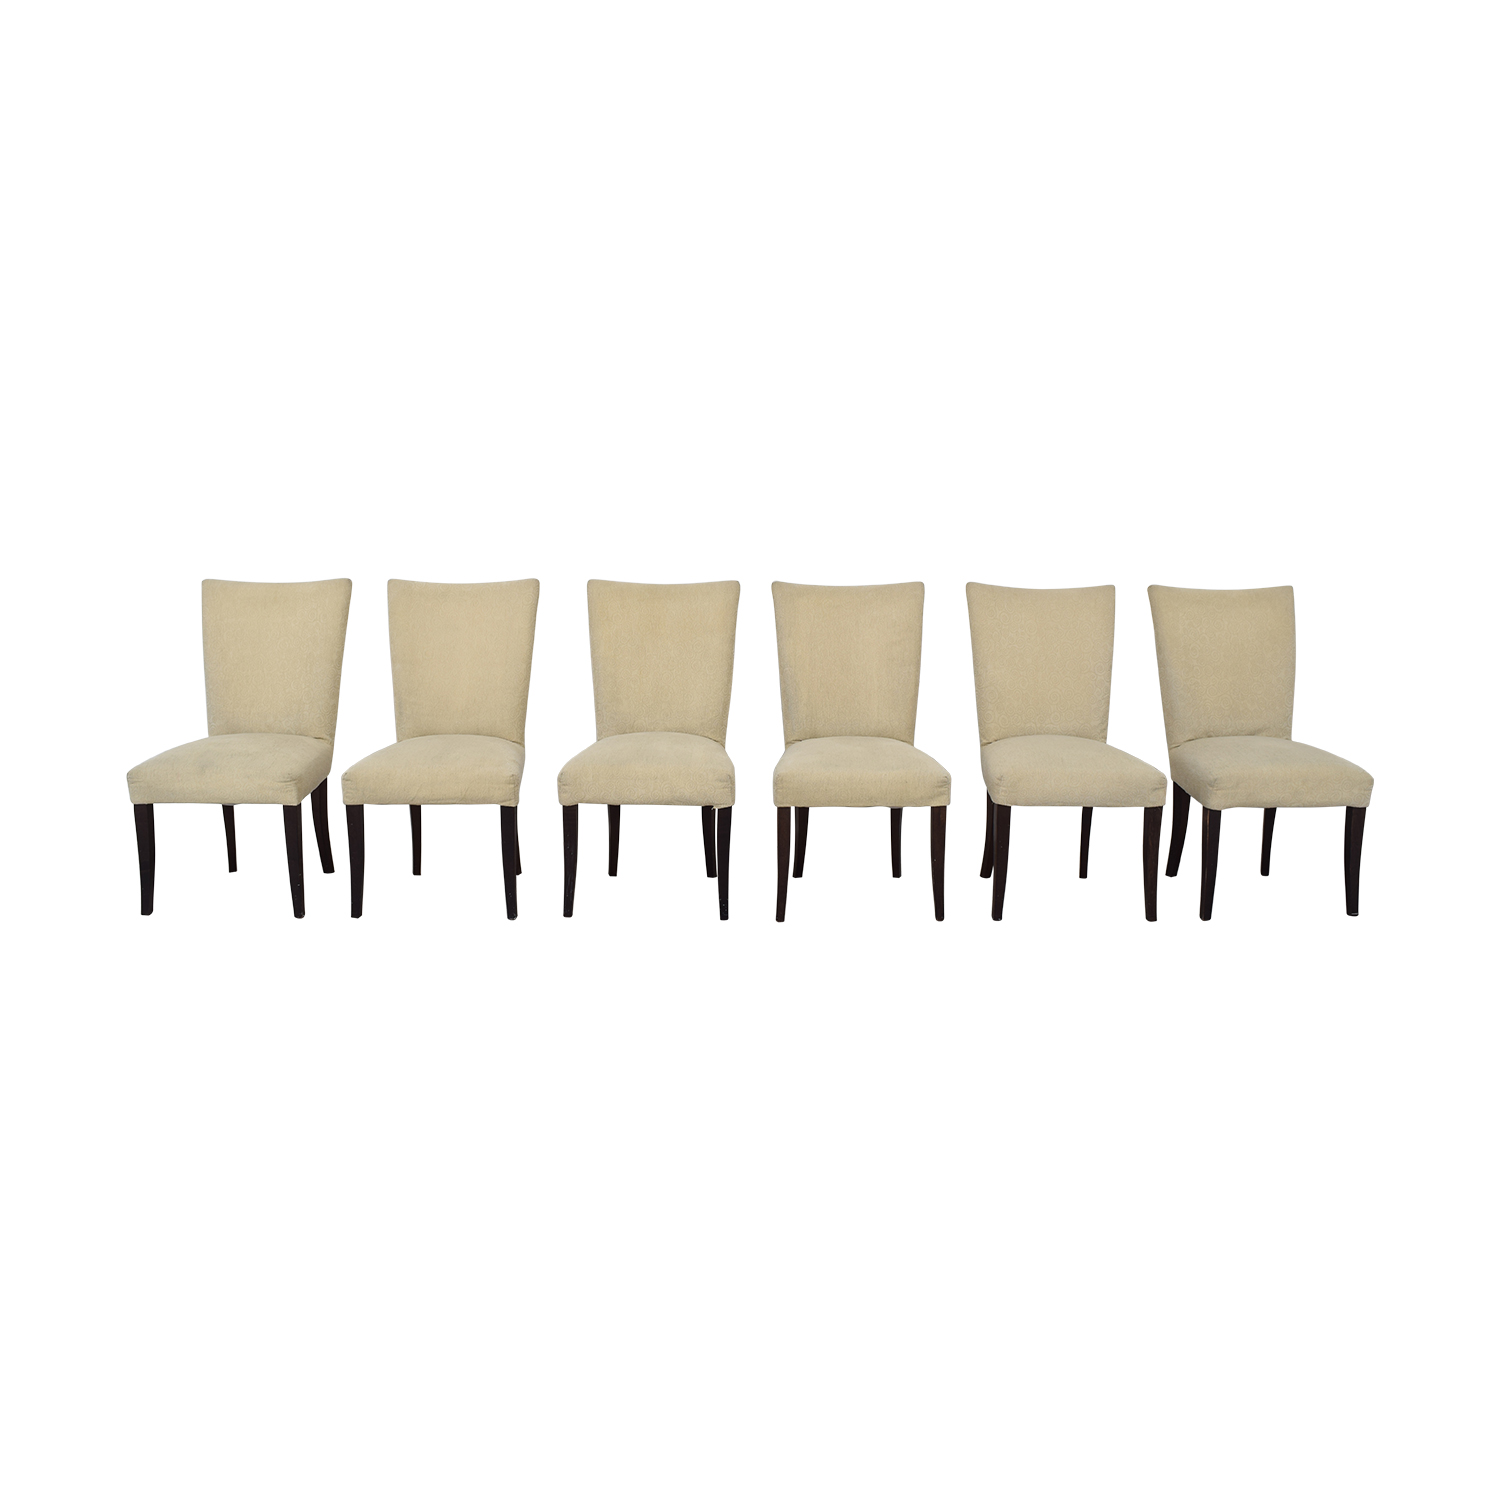 Macy's Macy's Beige Dining Chairs price